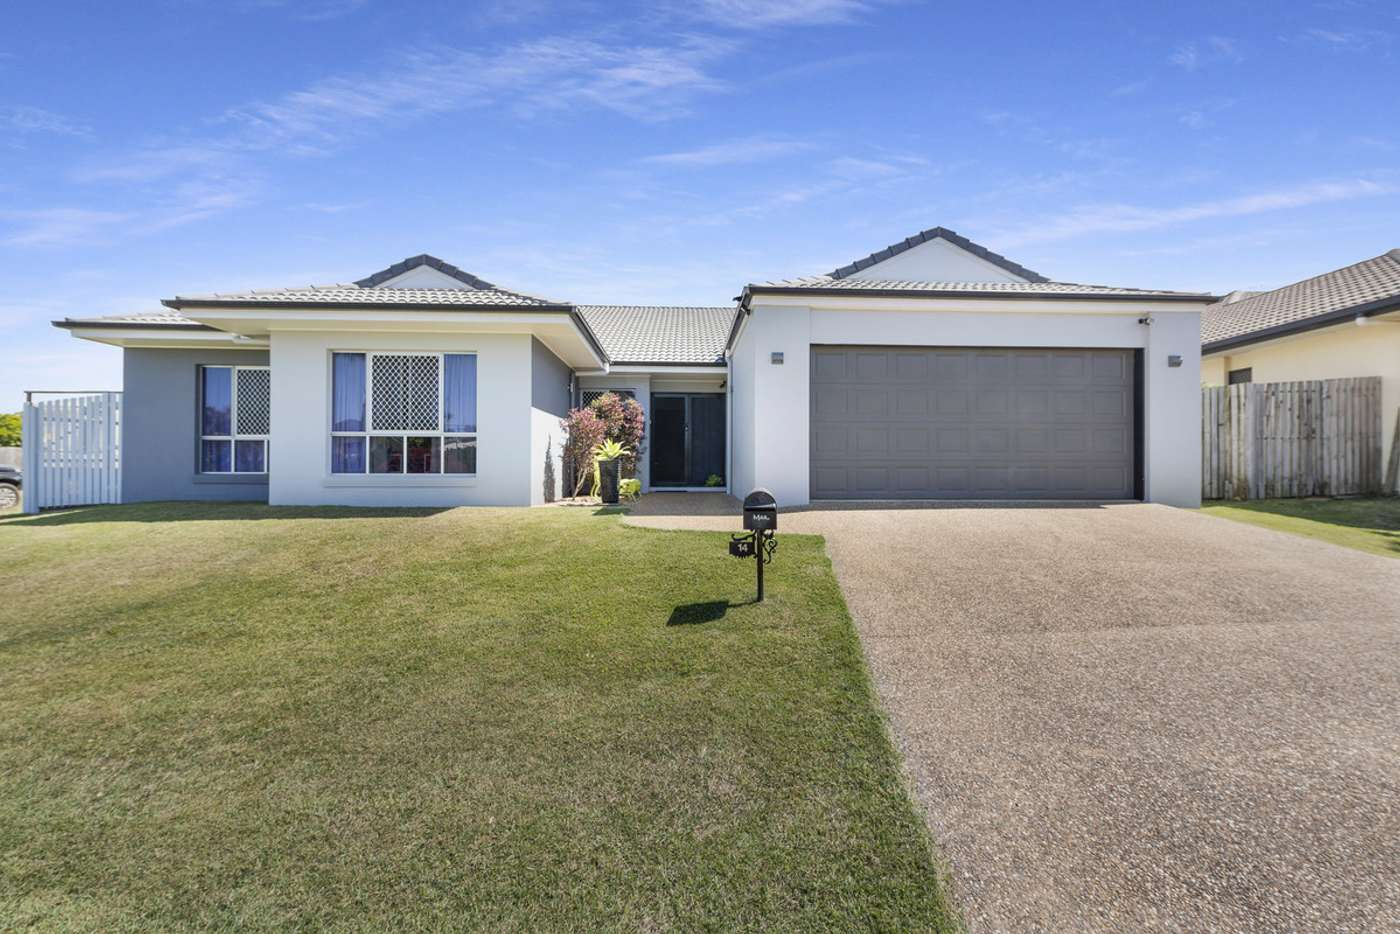 Main view of Homely house listing, 14 Brandon Court, Coral Cove QLD 4670